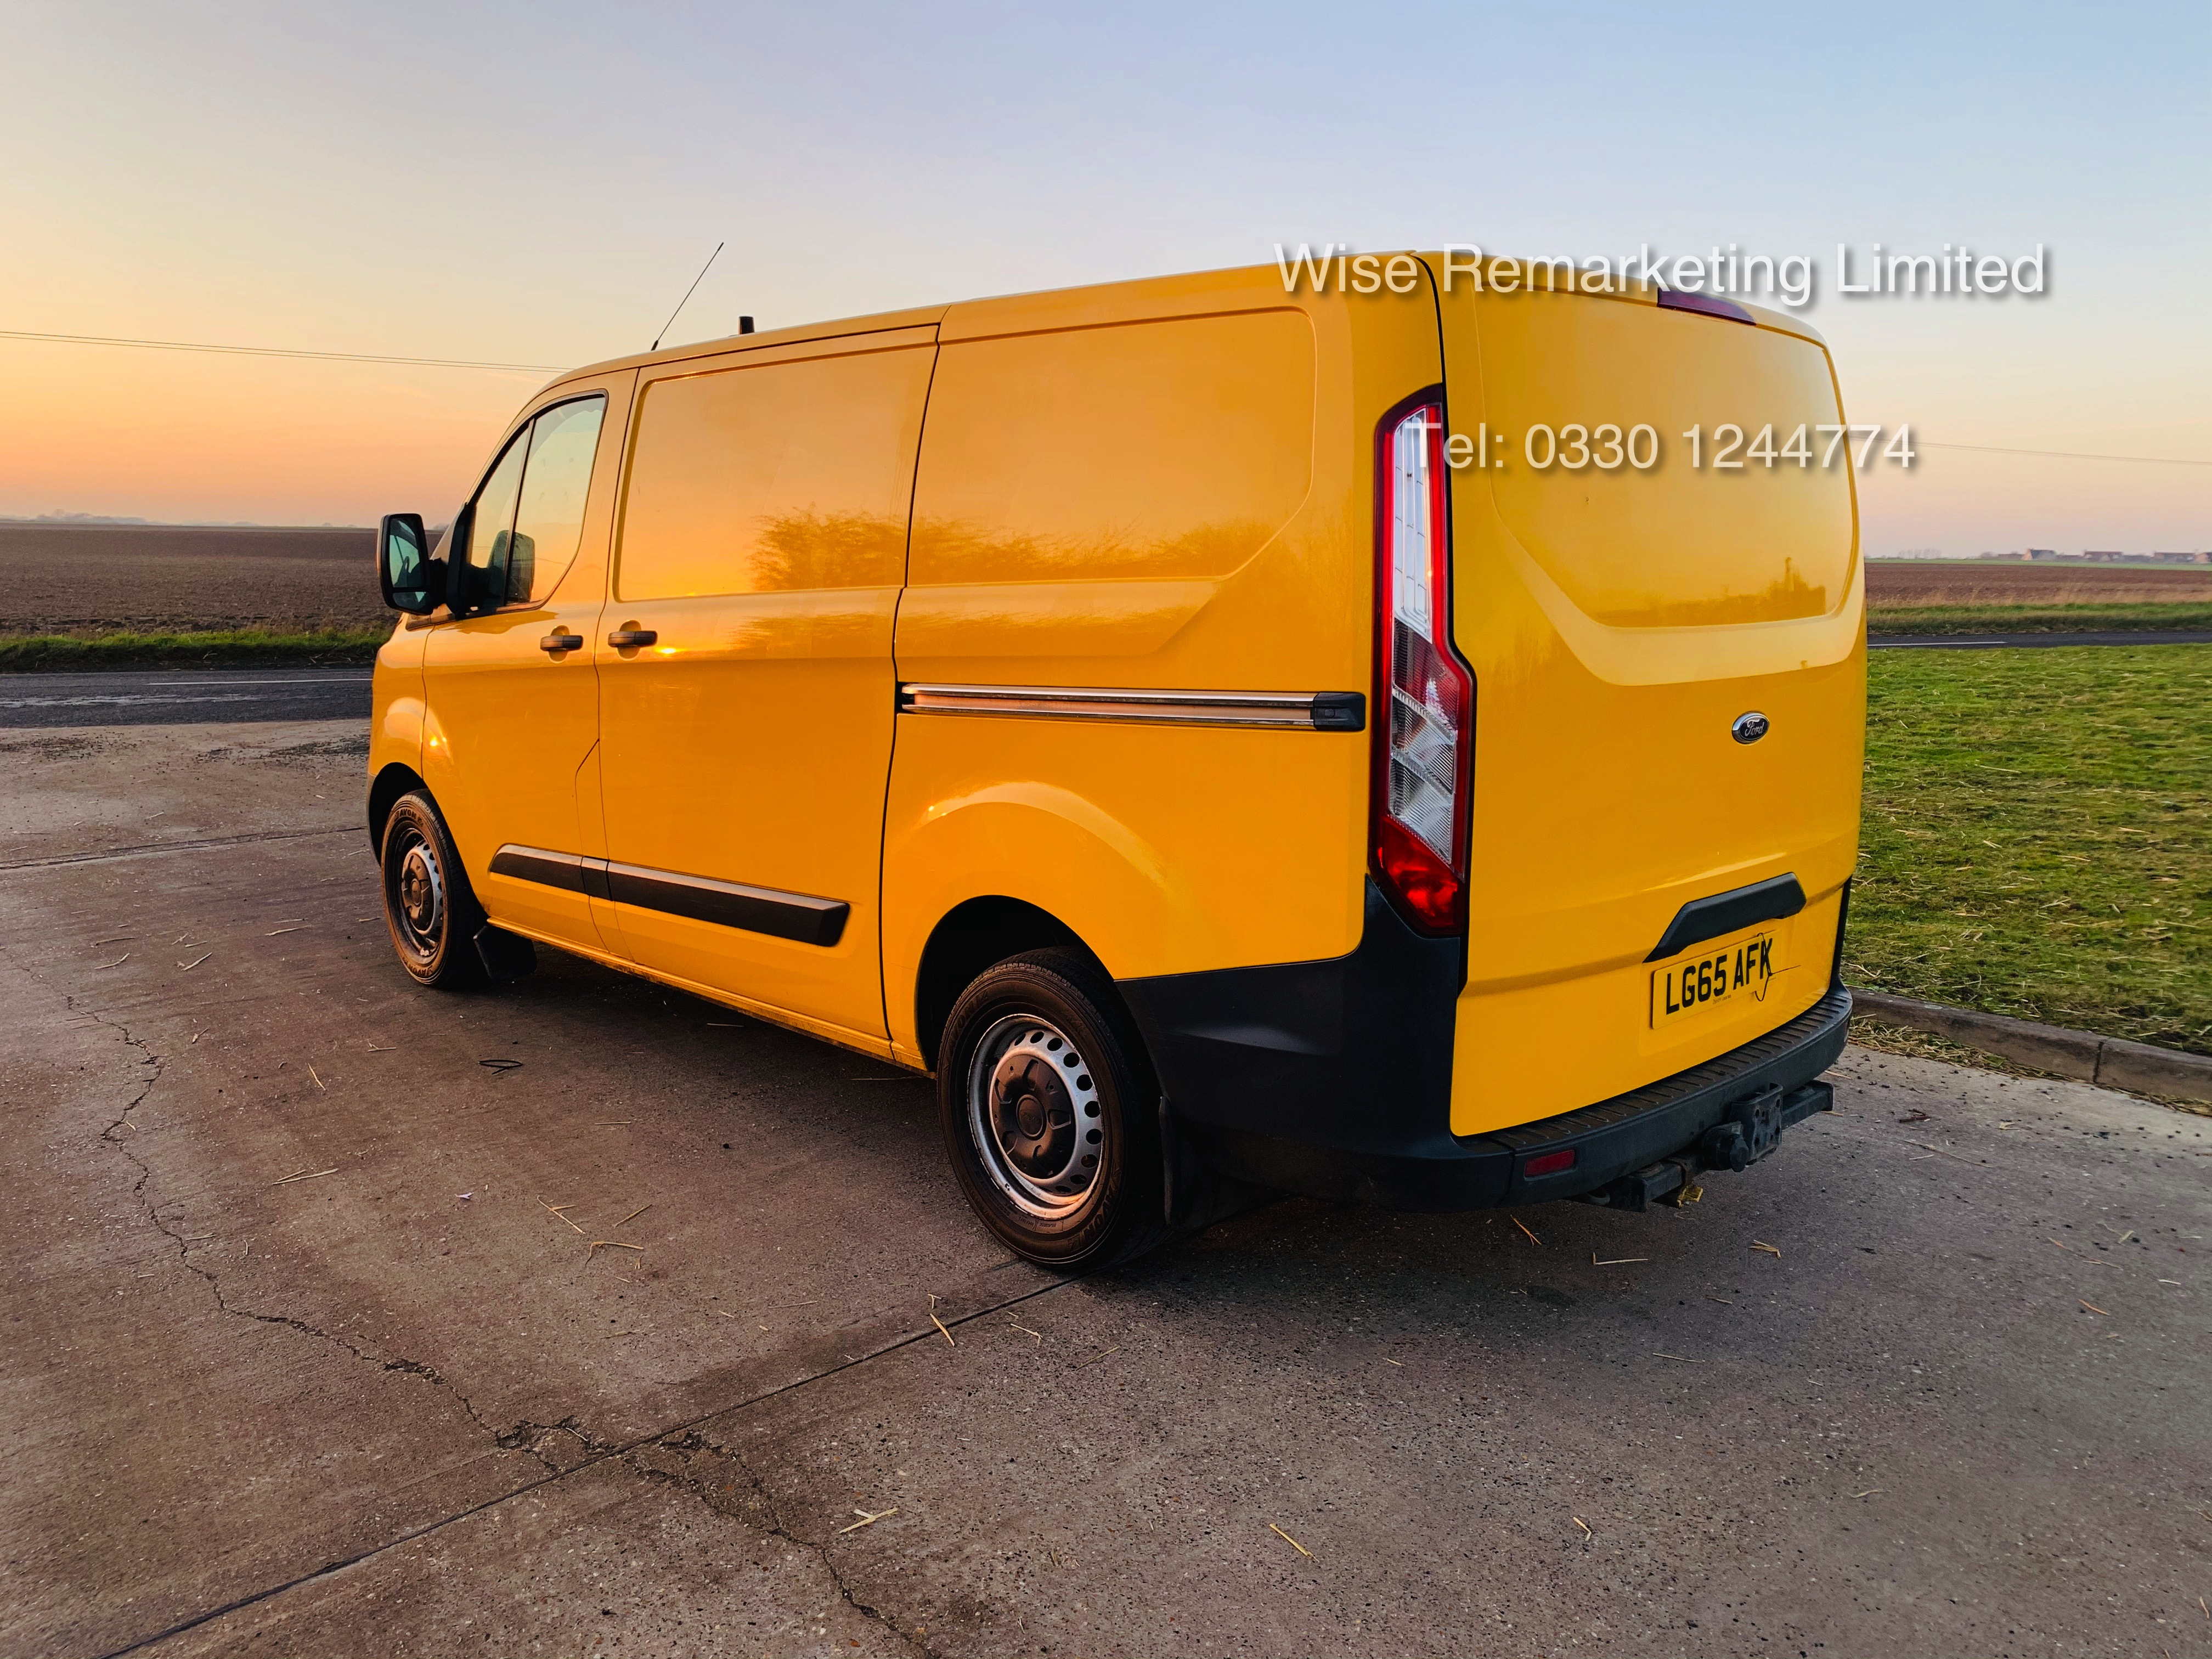 Ford Transit Custom 2.2 TDCI 310 Eco-Tech - 2016 Model - 1 Keeper From New - Air Con - Ex AA Van - Image 2 of 23